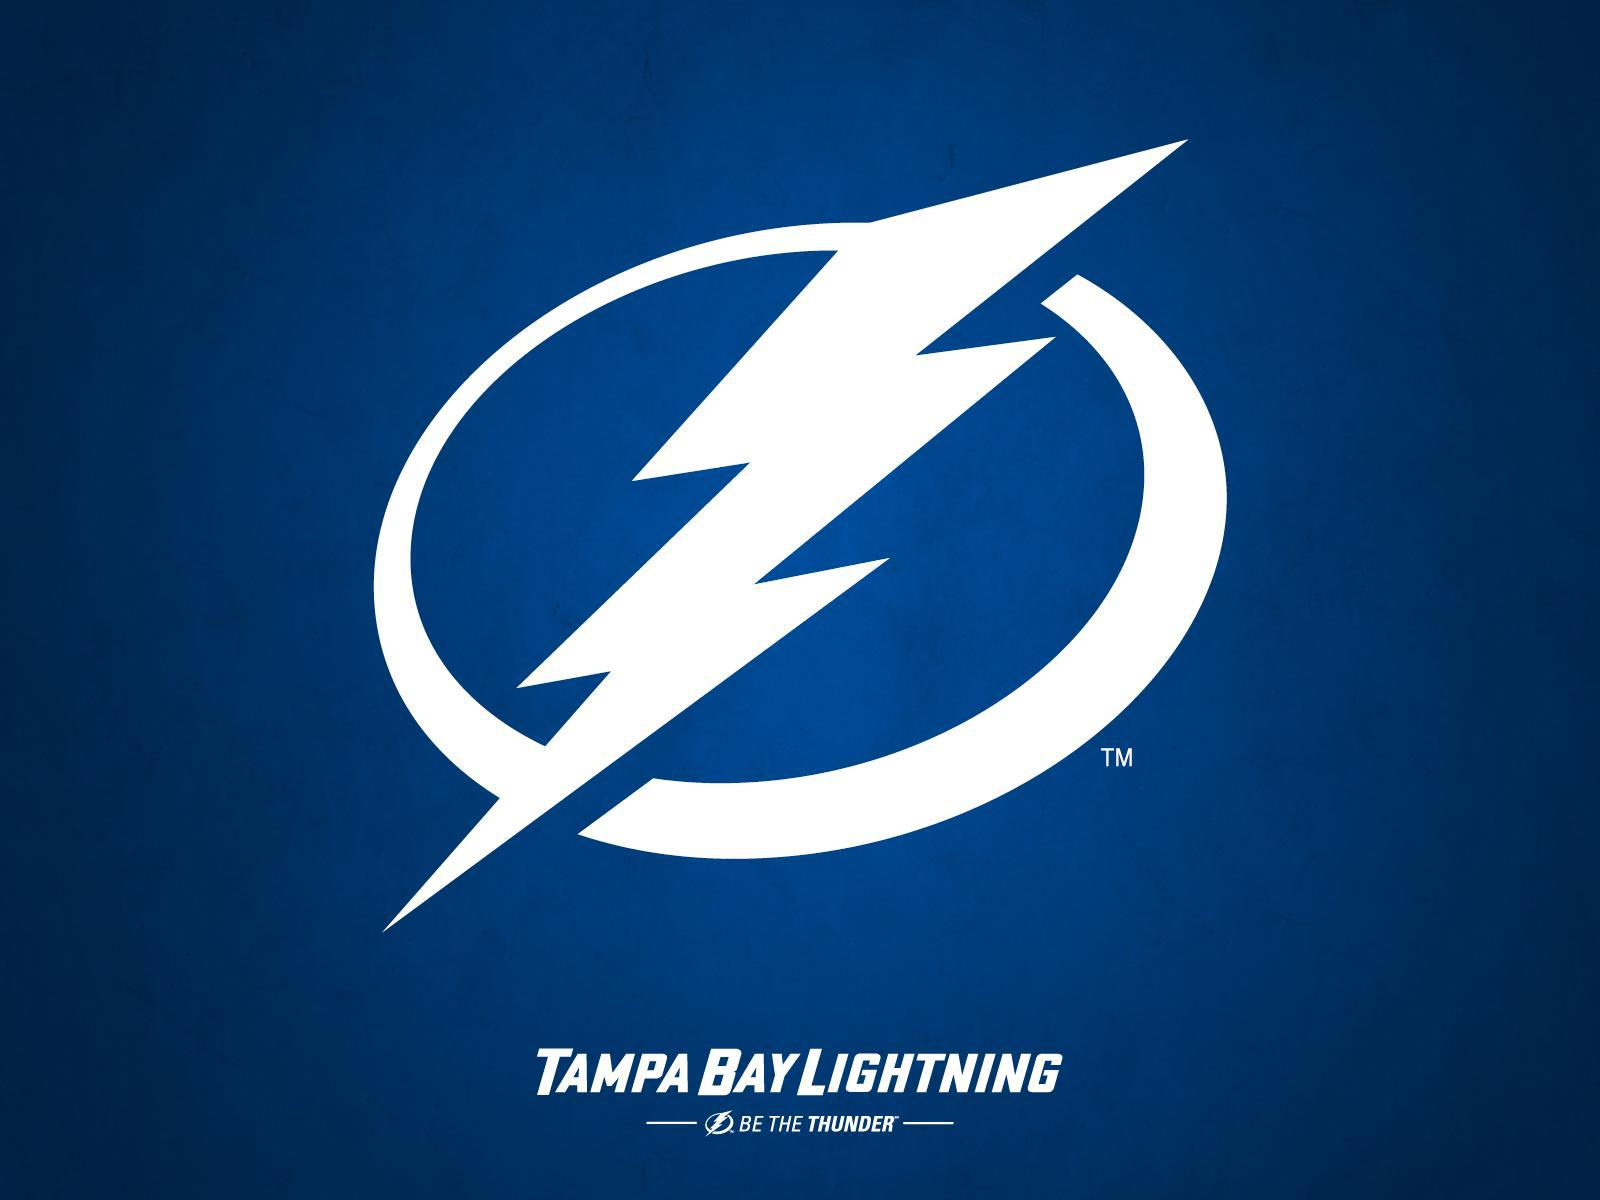 Tampa Bay Lightning Wallpapers 1600x1200